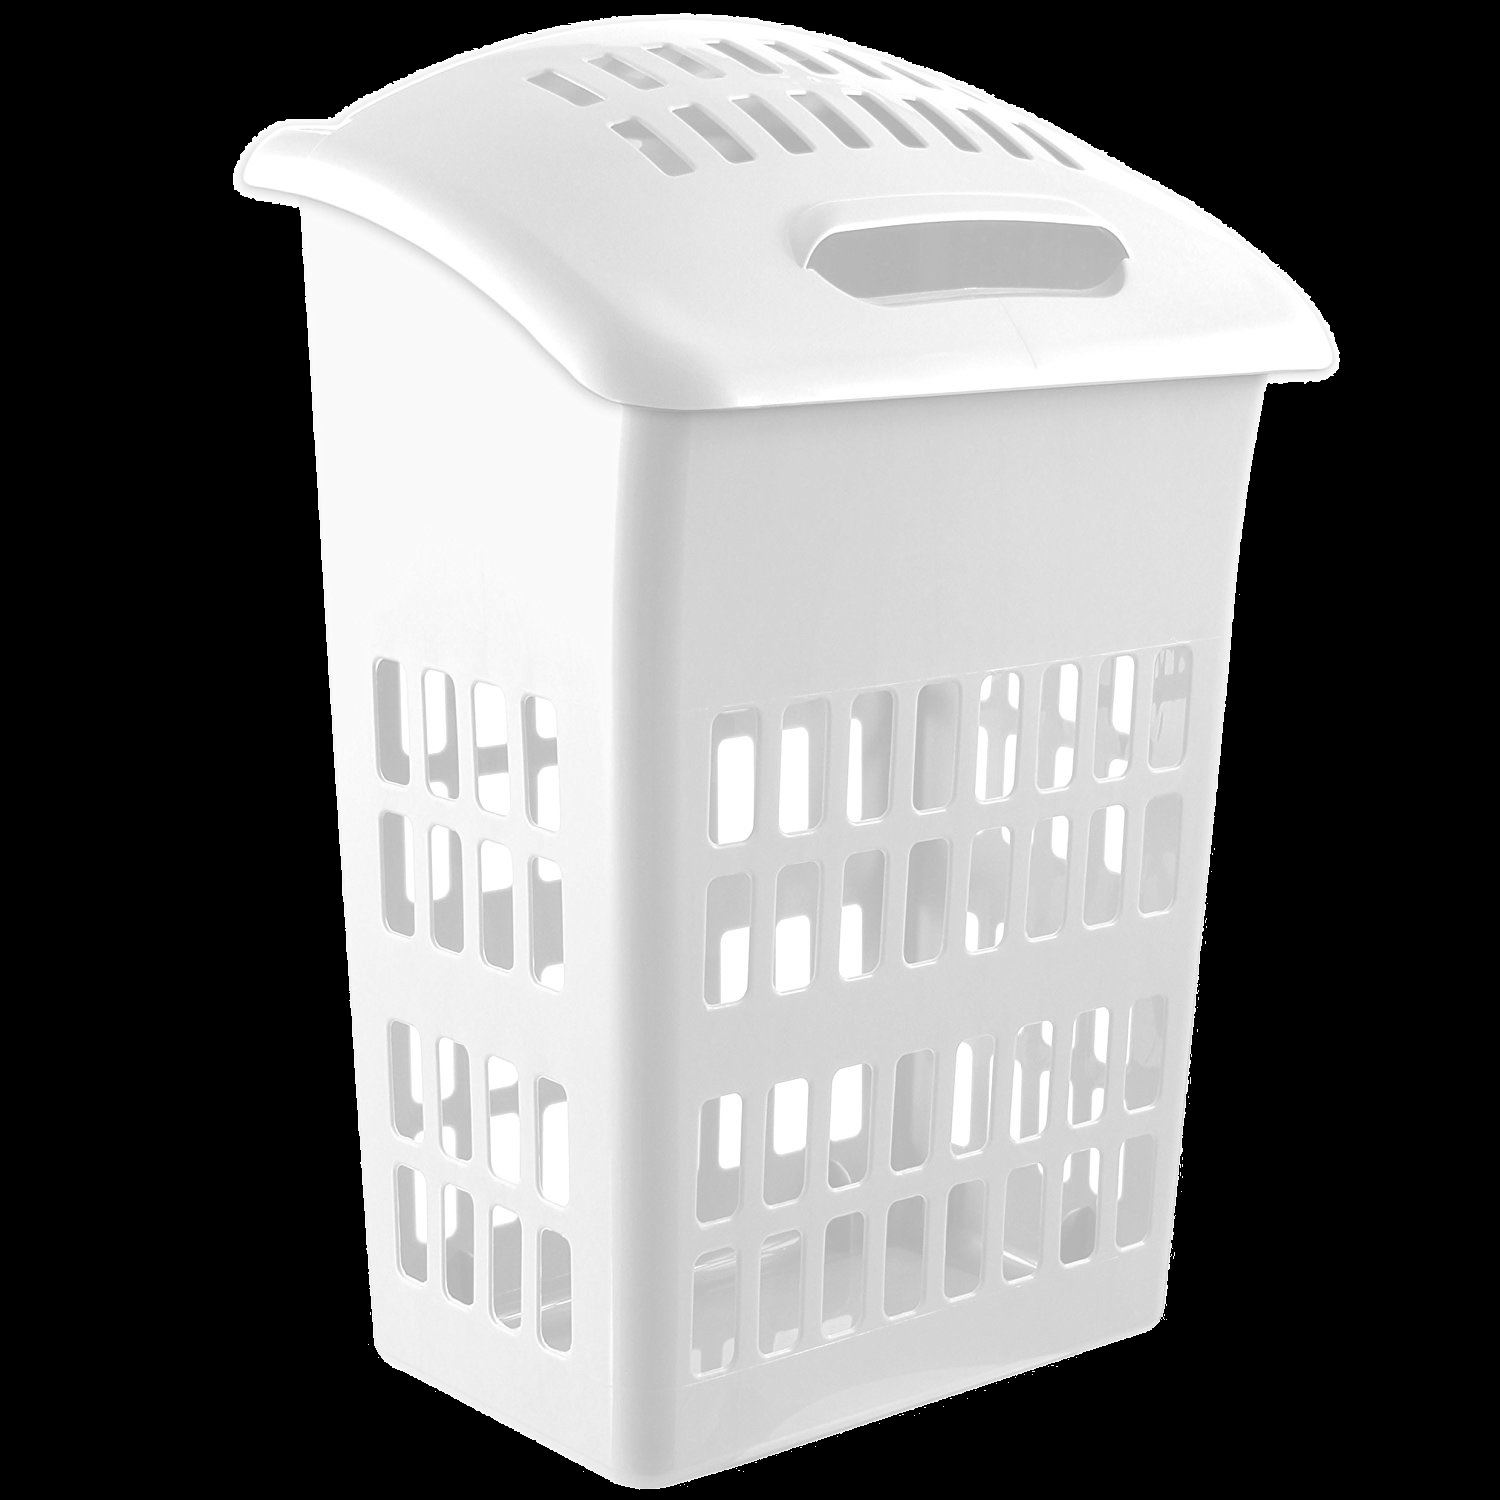 White Laundry Hamper With Lid Large 60 Litre Laundry Hamper Basket Cloth Washing Storage